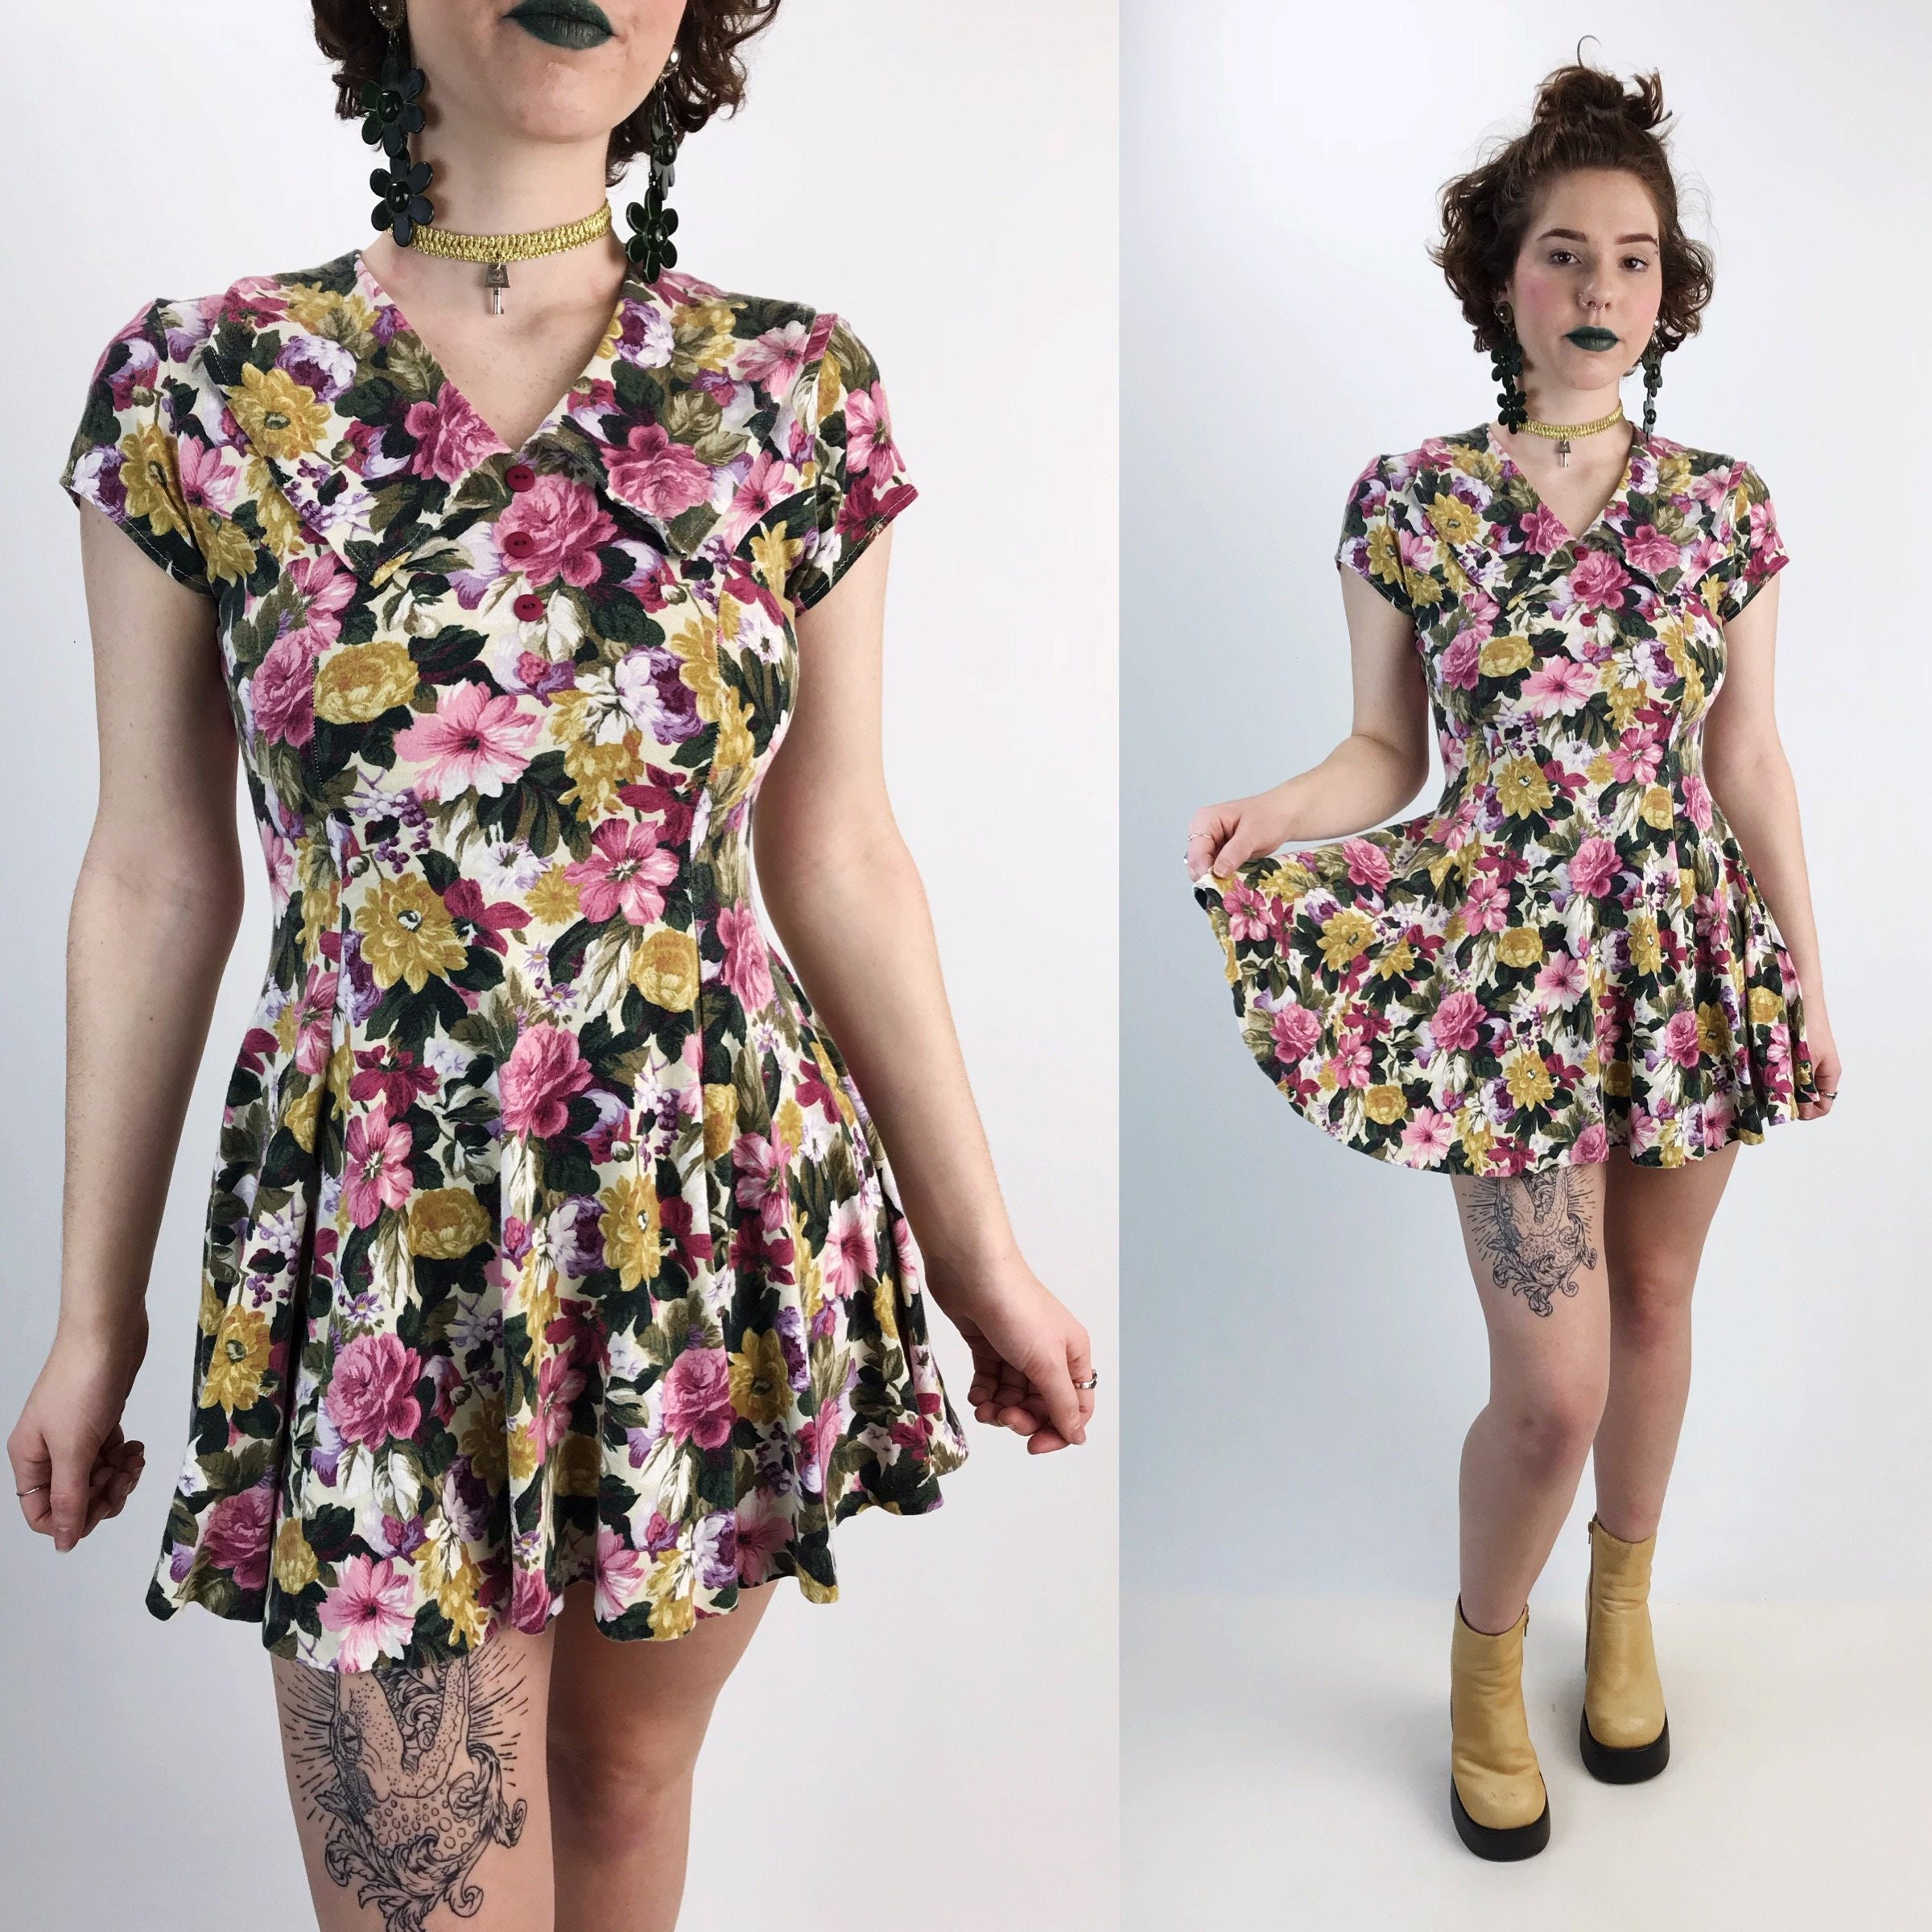 90 s Girly Floral Cotton Mini Dress Small - Pink Allover Print 1990 s  Preppy Romantic Cute Comfy Everyday Mini Date Skater Dress With Collar.  gallery photo ... d891d7710